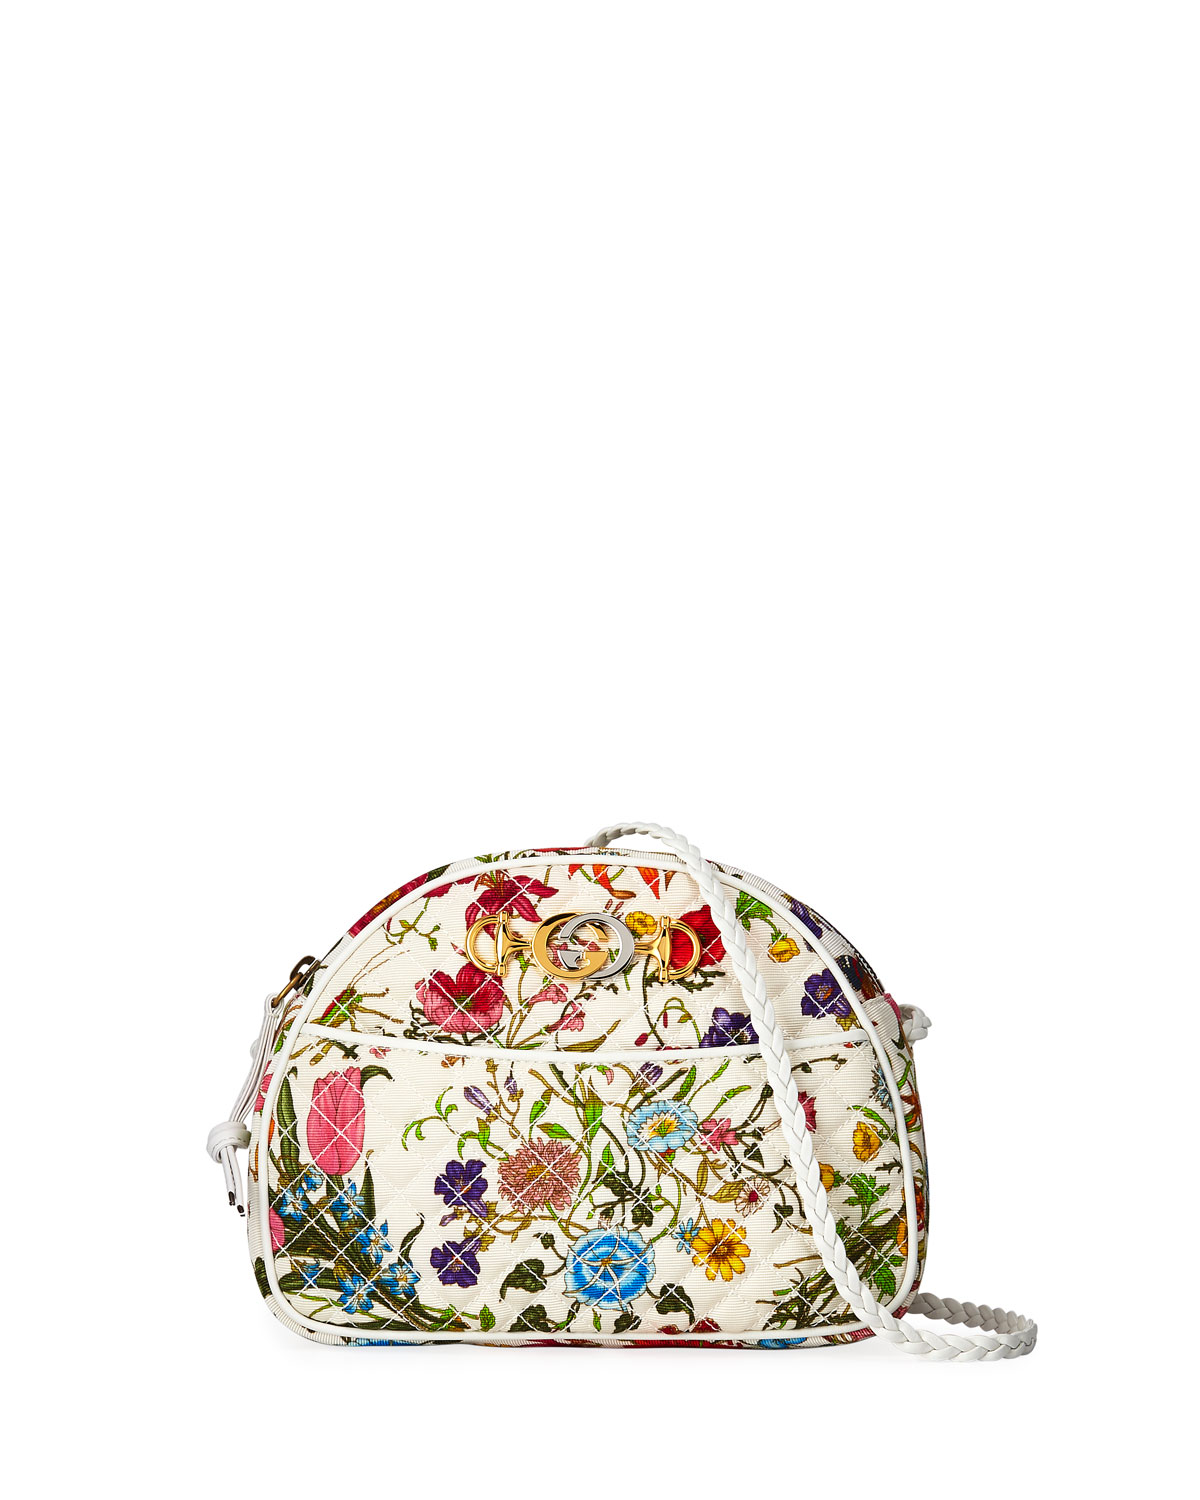 7d730e589bb Gucci Trapuntata Small Quilted Floral Shoulder Bag   Neiman Marcus